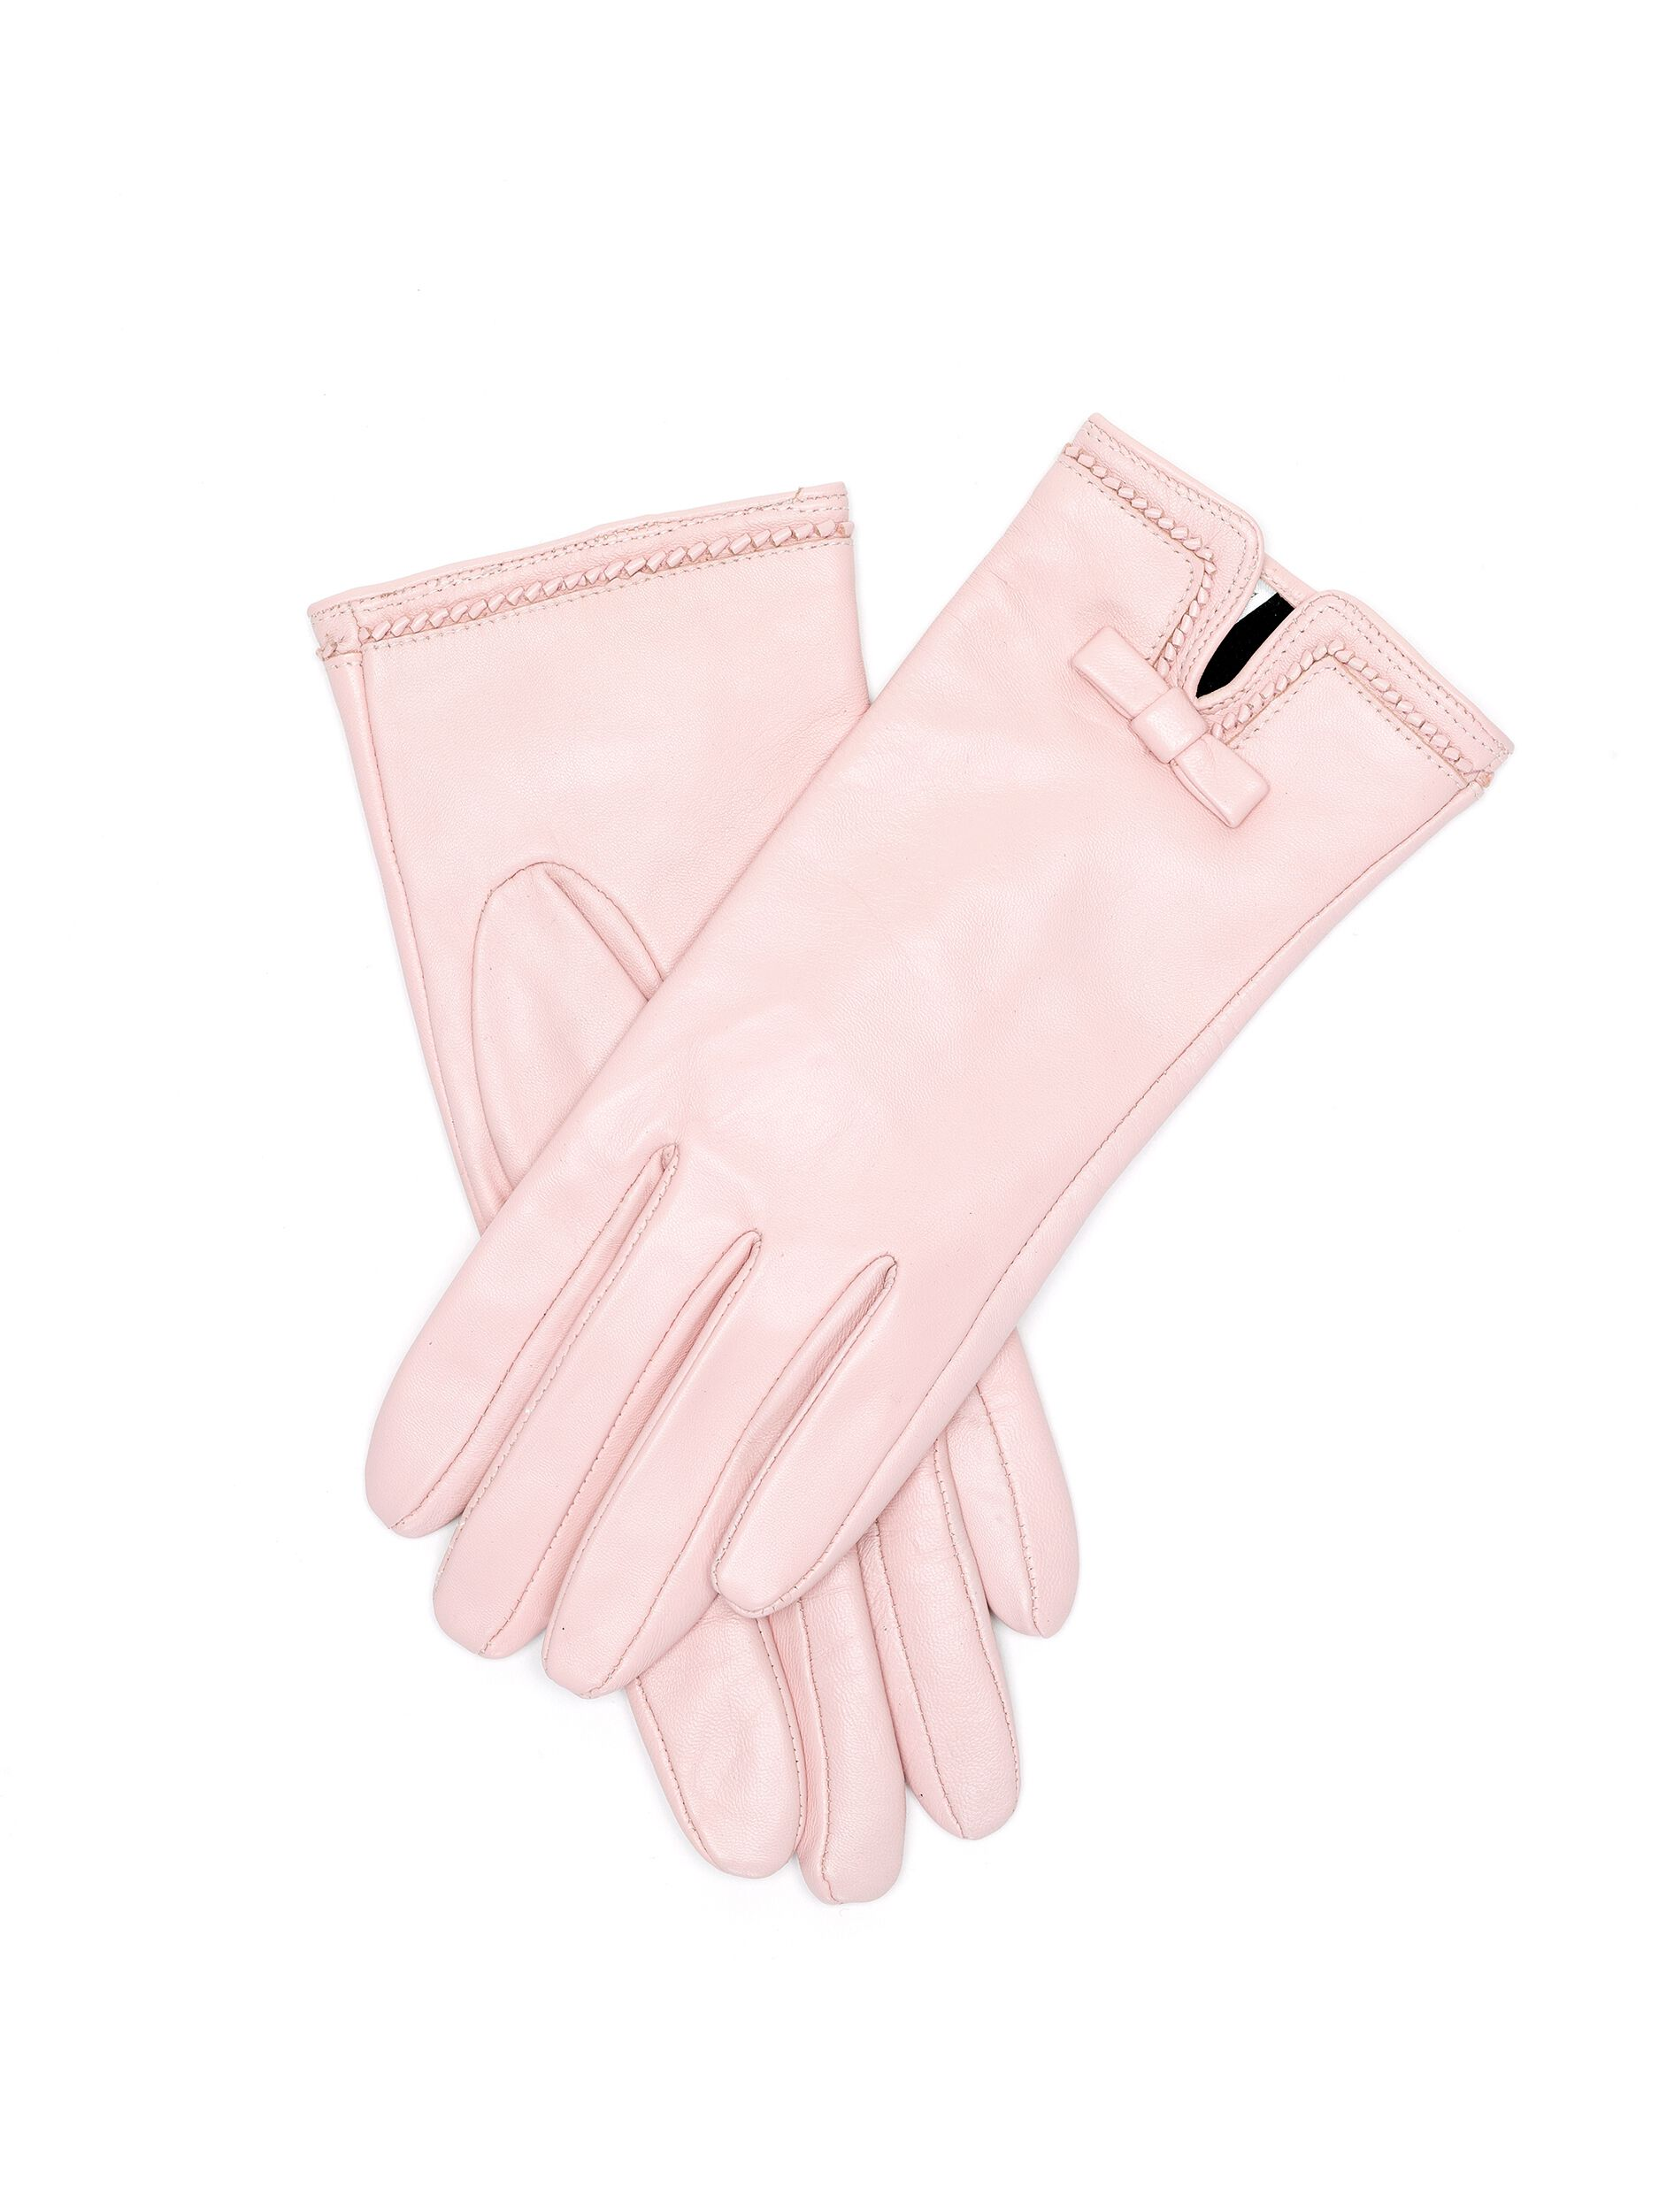 Fairy Gloves